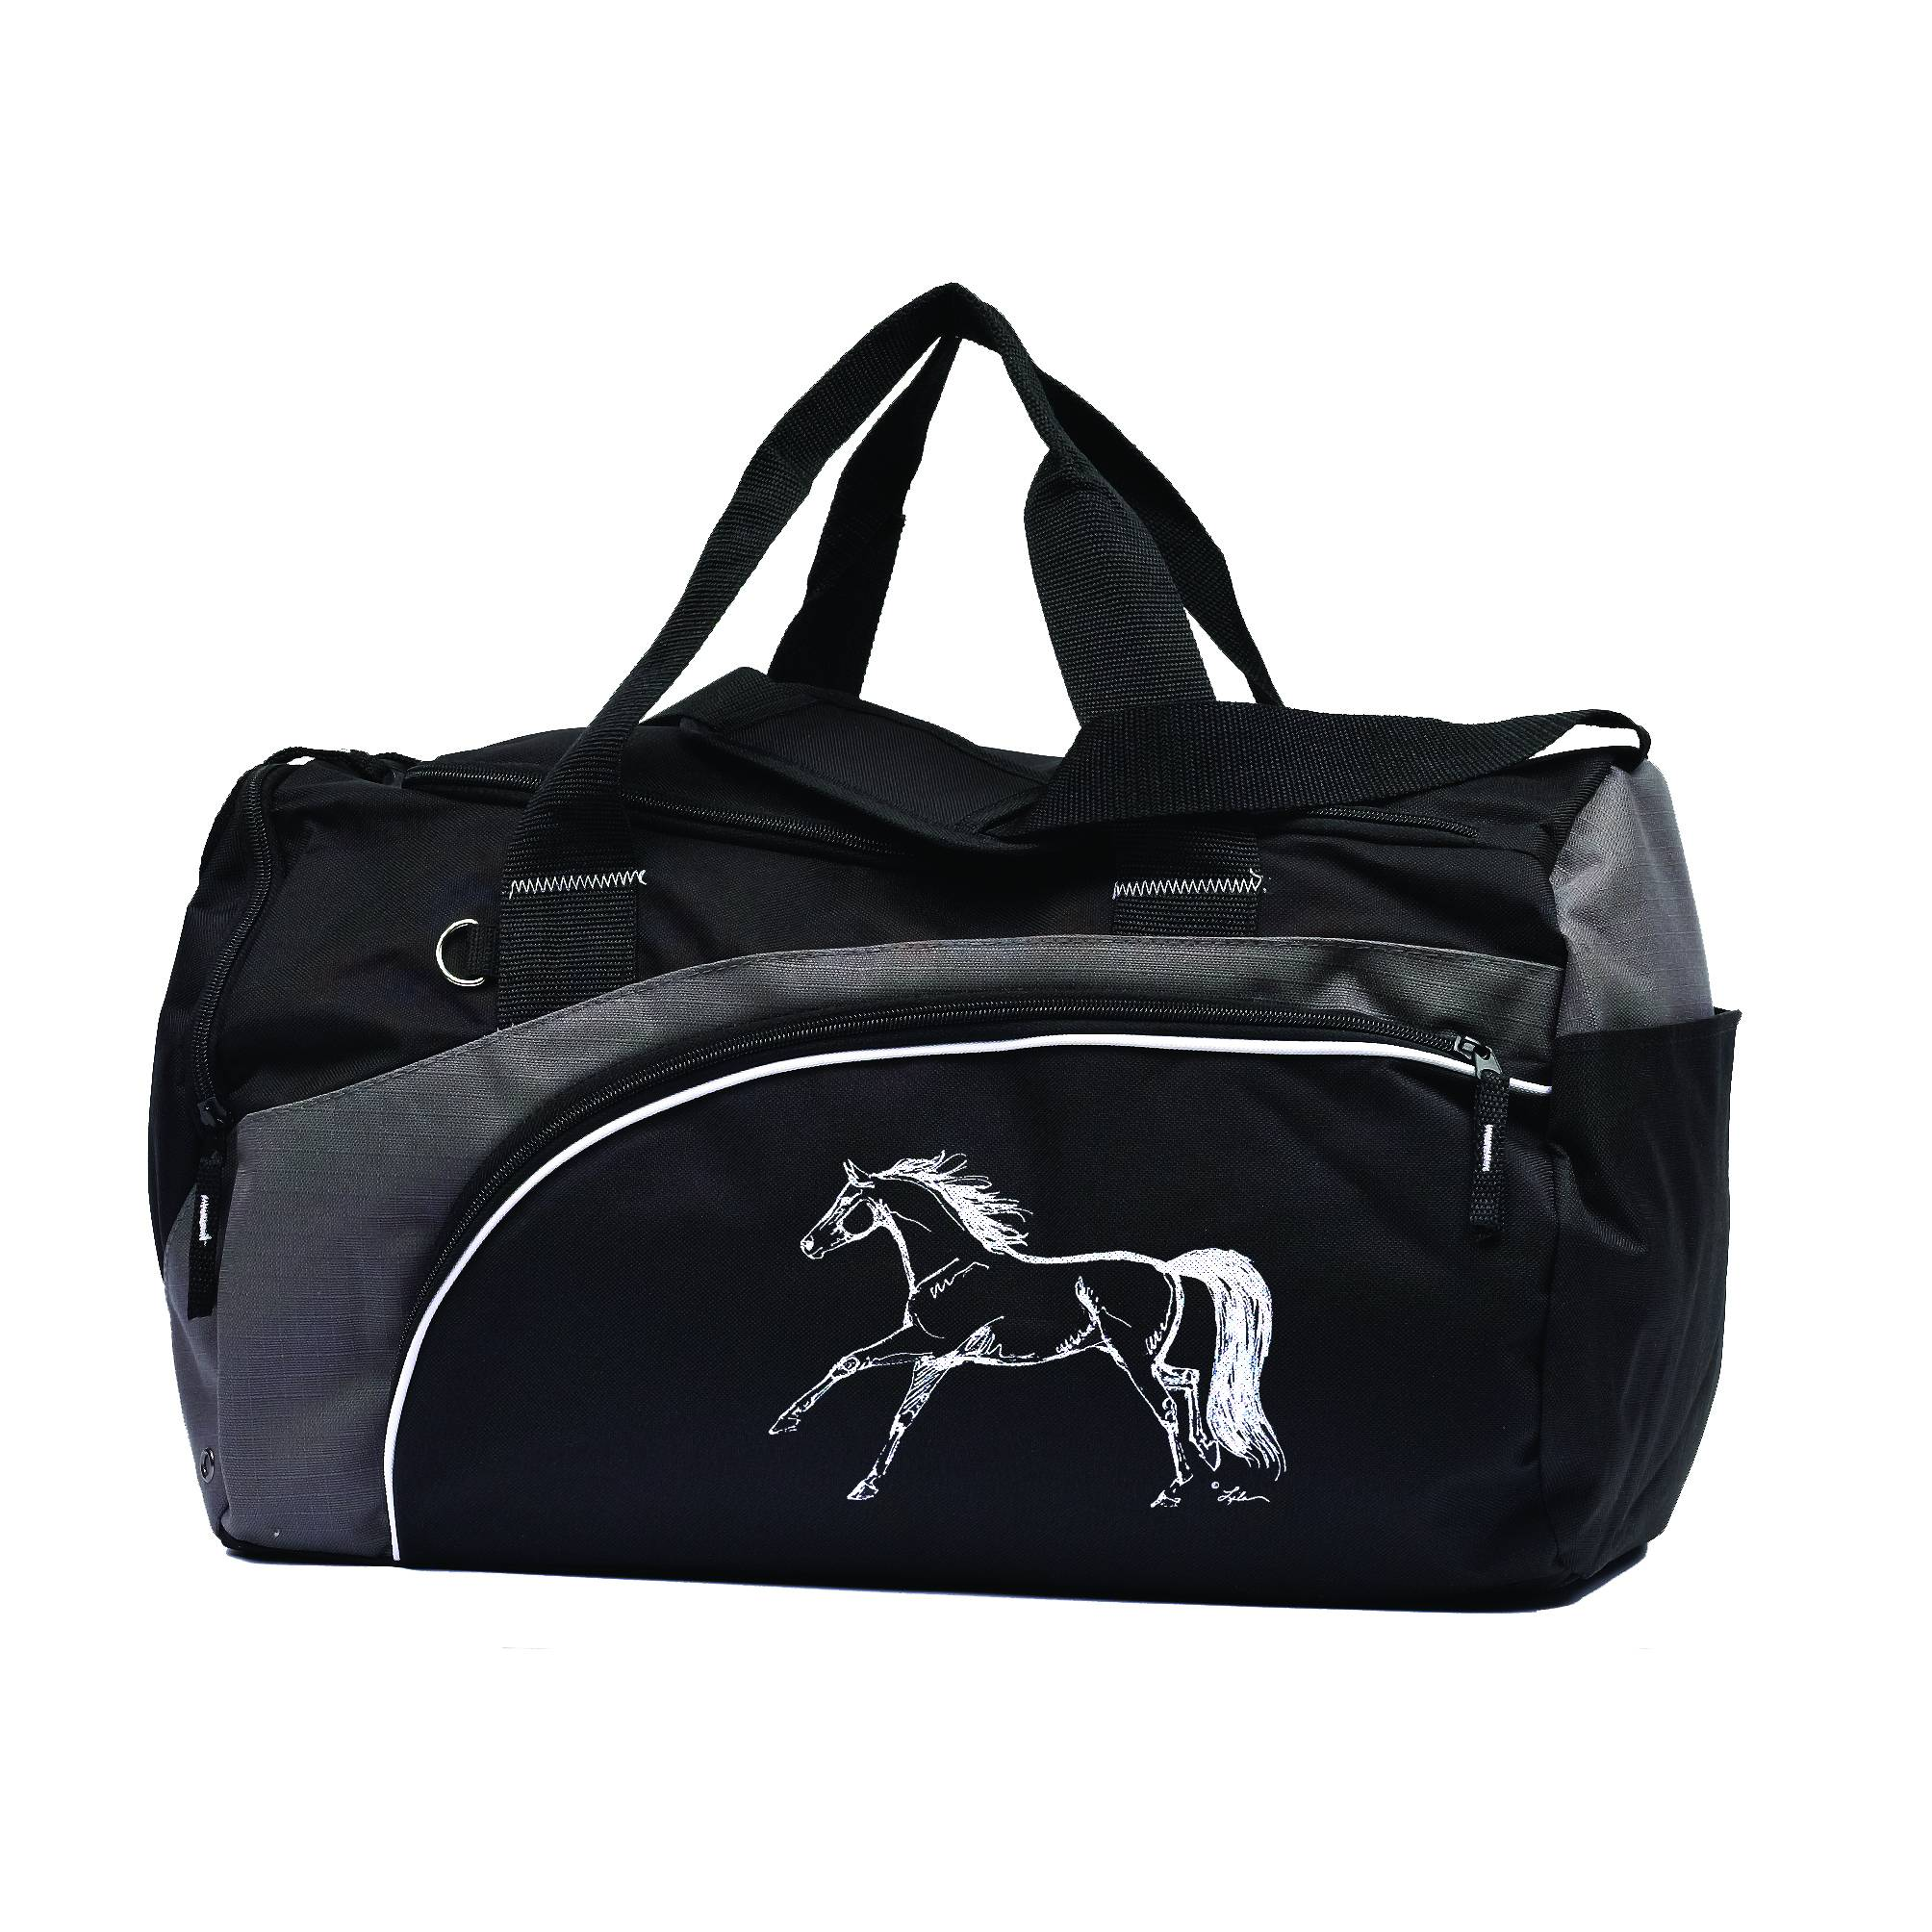 Kelley Duffle Bag with Horse - Black